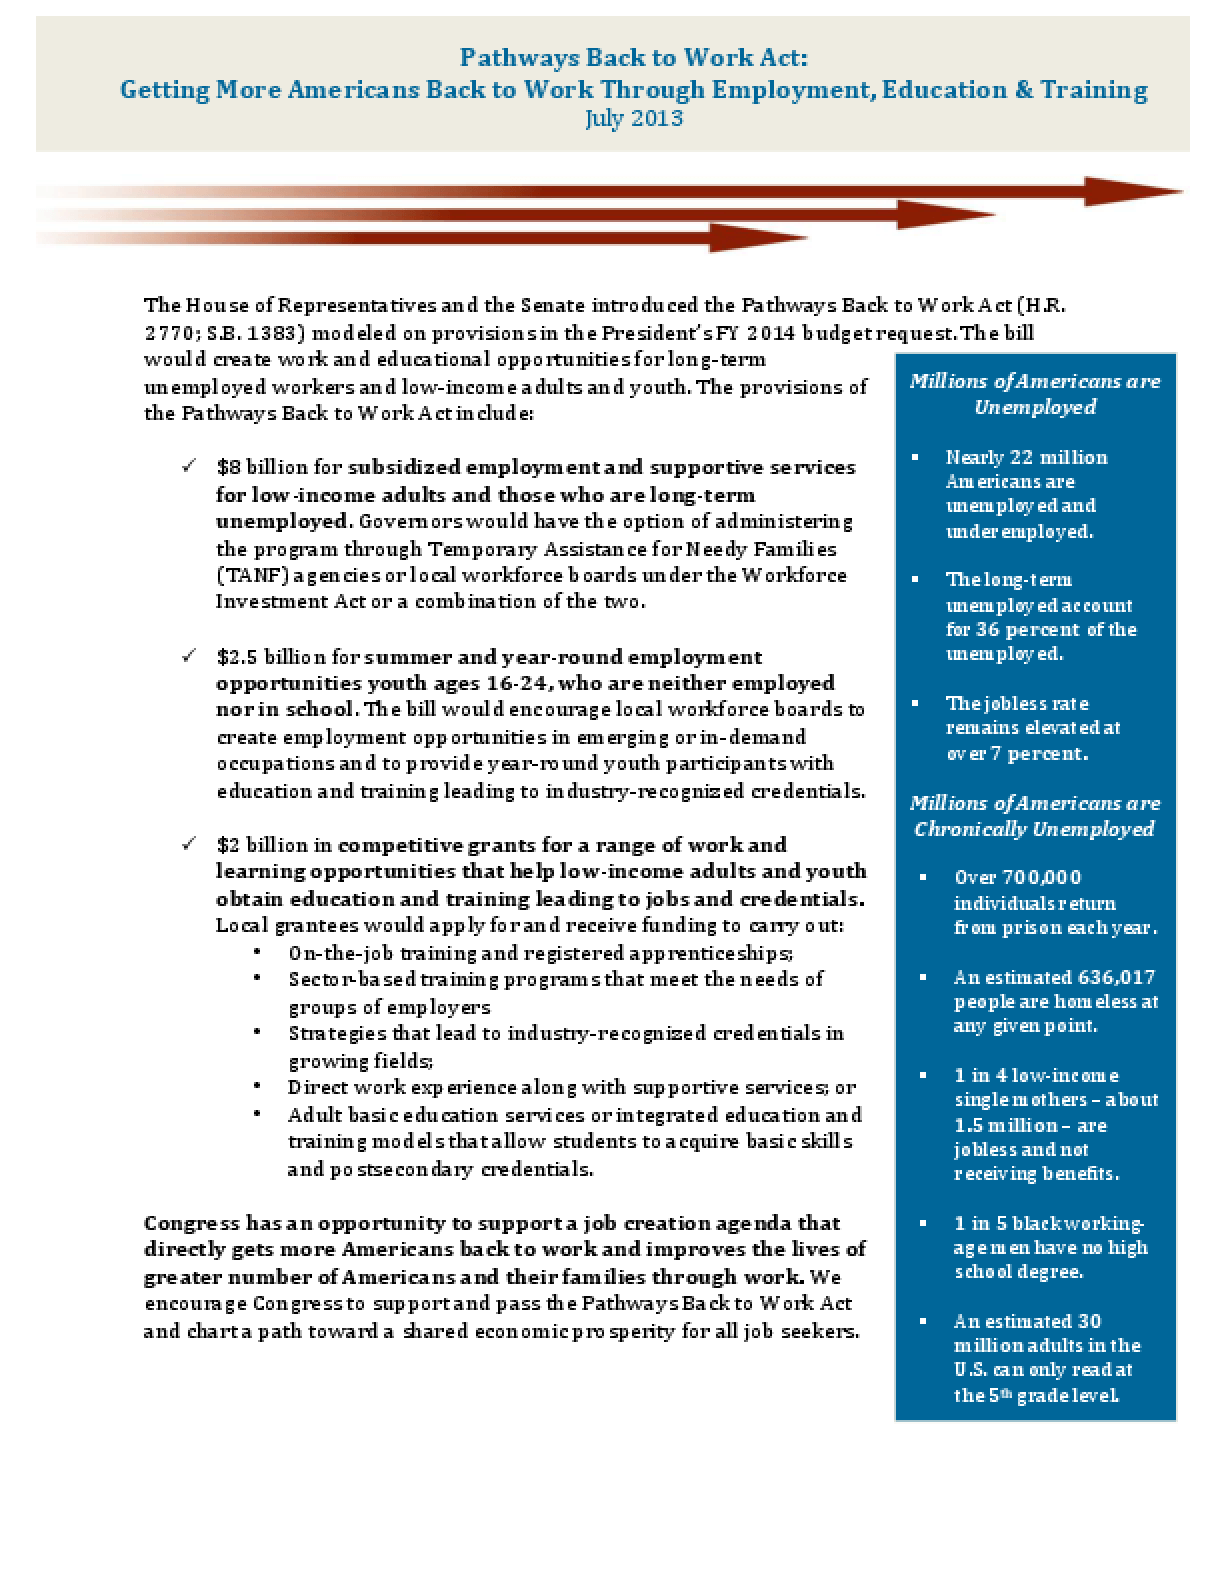 Pathways Back to Work Act: Getting More Americans Back to Work Through Employment, Education and Training